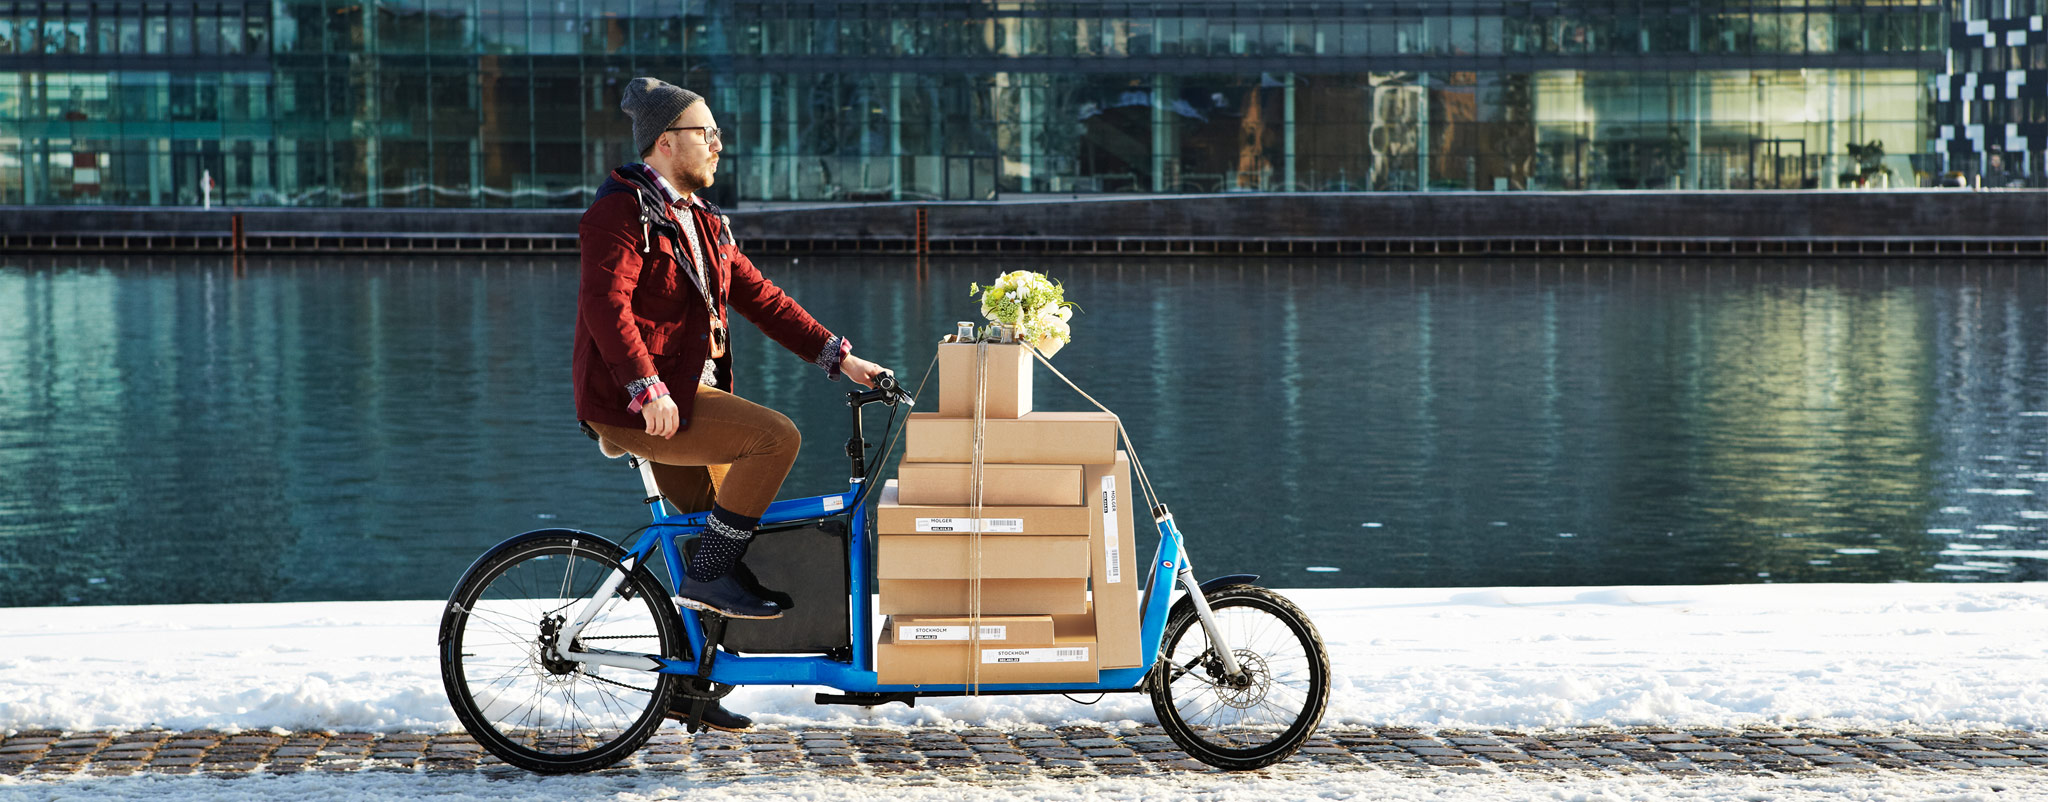 A man on a cargo bike loaded with IKEA packages.